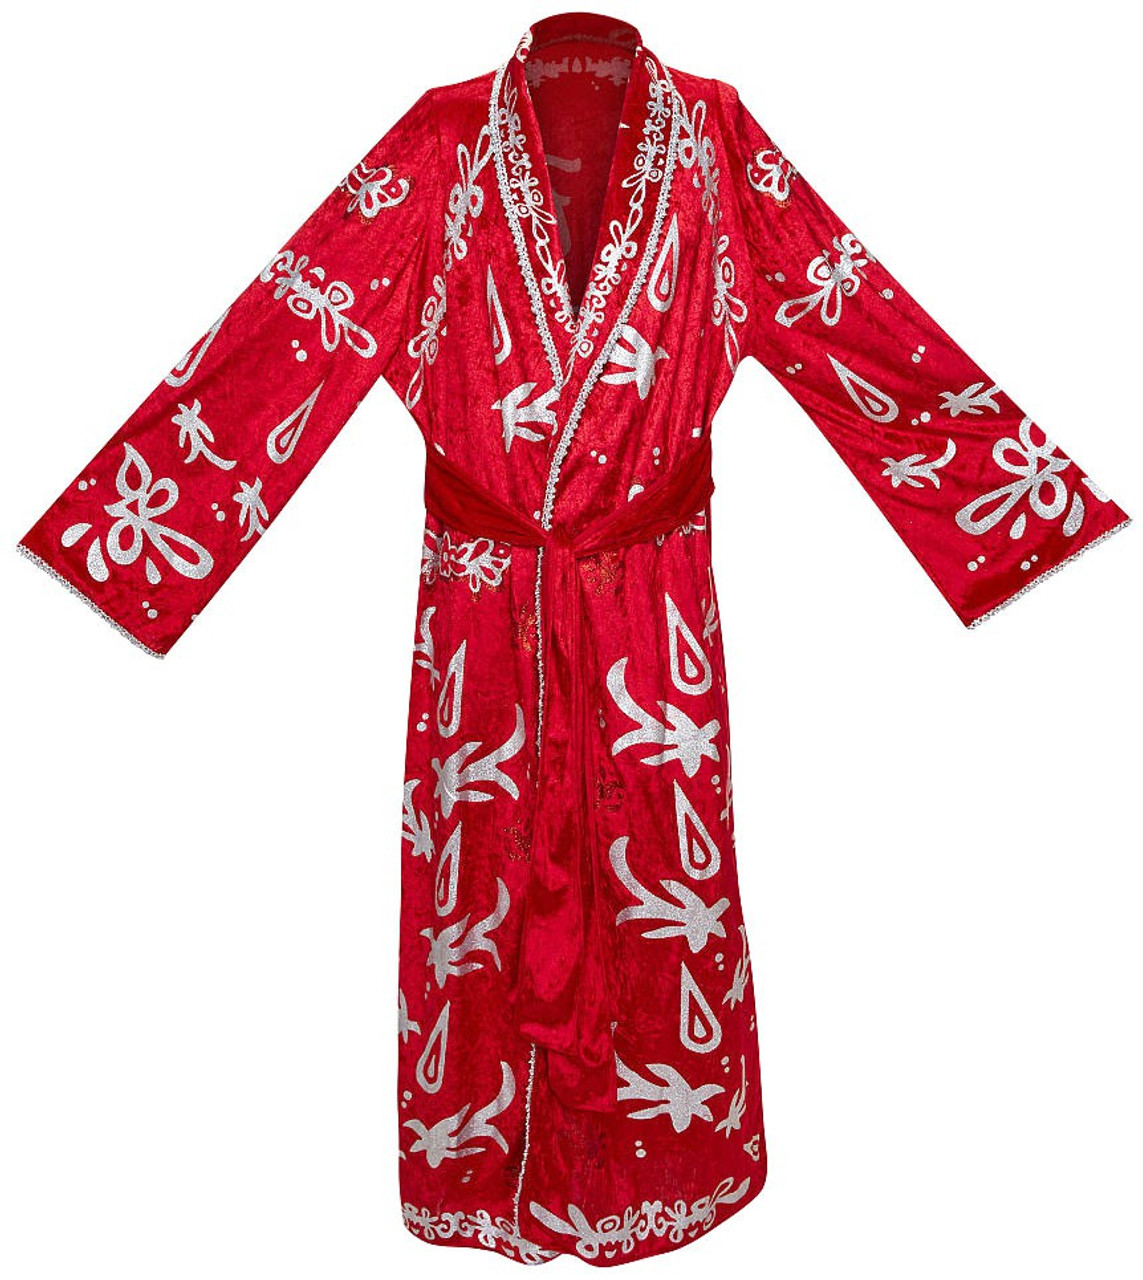 WWE Wrestling Costumes Ric Flair Adult Collectible Dress Up Robe  sc 1 st  ToyWiz.com & WWE Wrestling Costumes Ric Flair Adult Collectible Dress Up Robe ...